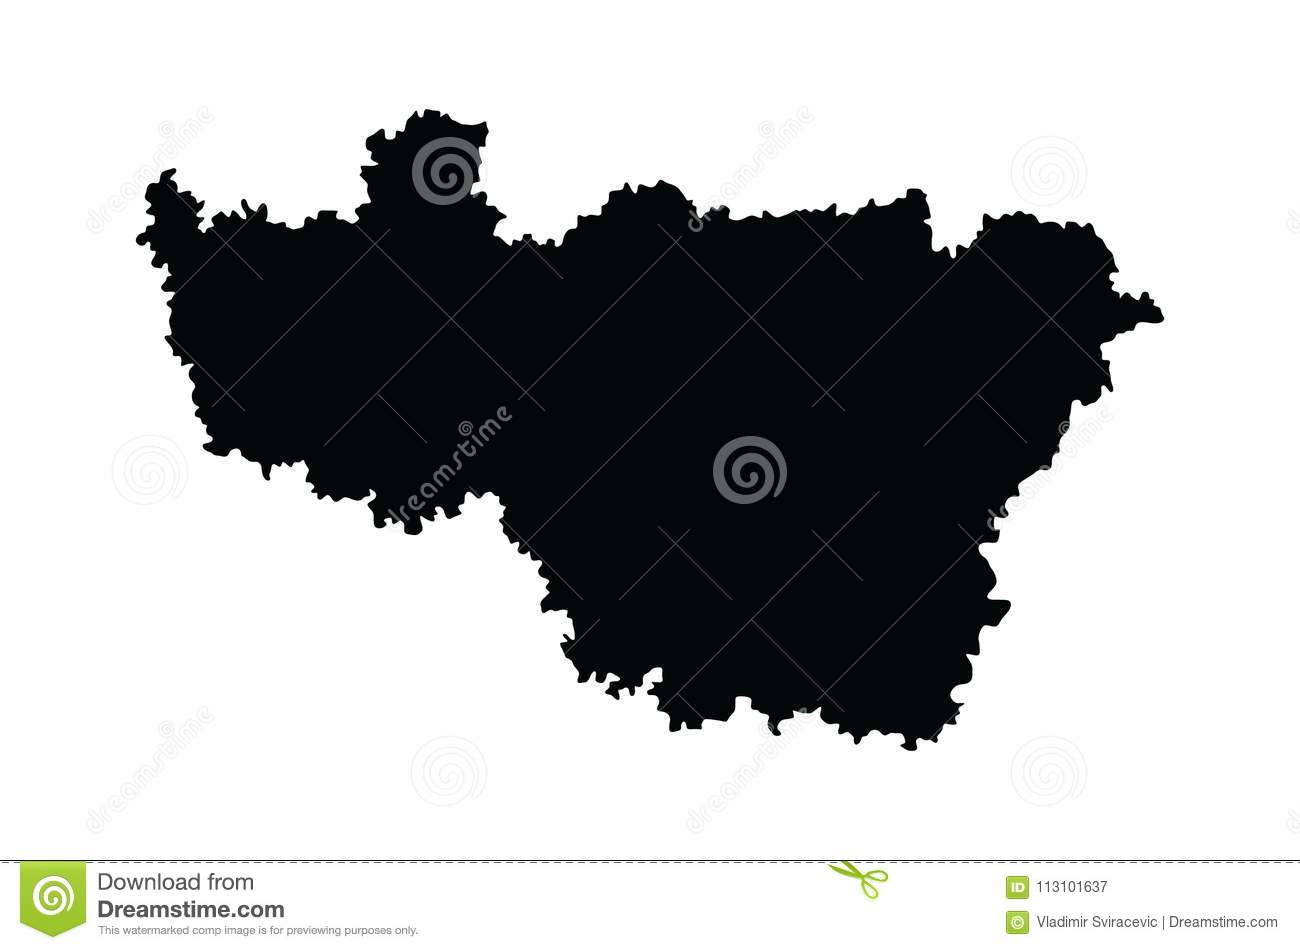 Vladimir Russia Map.Vladimir Oblast Map Map Isolated On White Background Russia Oblast